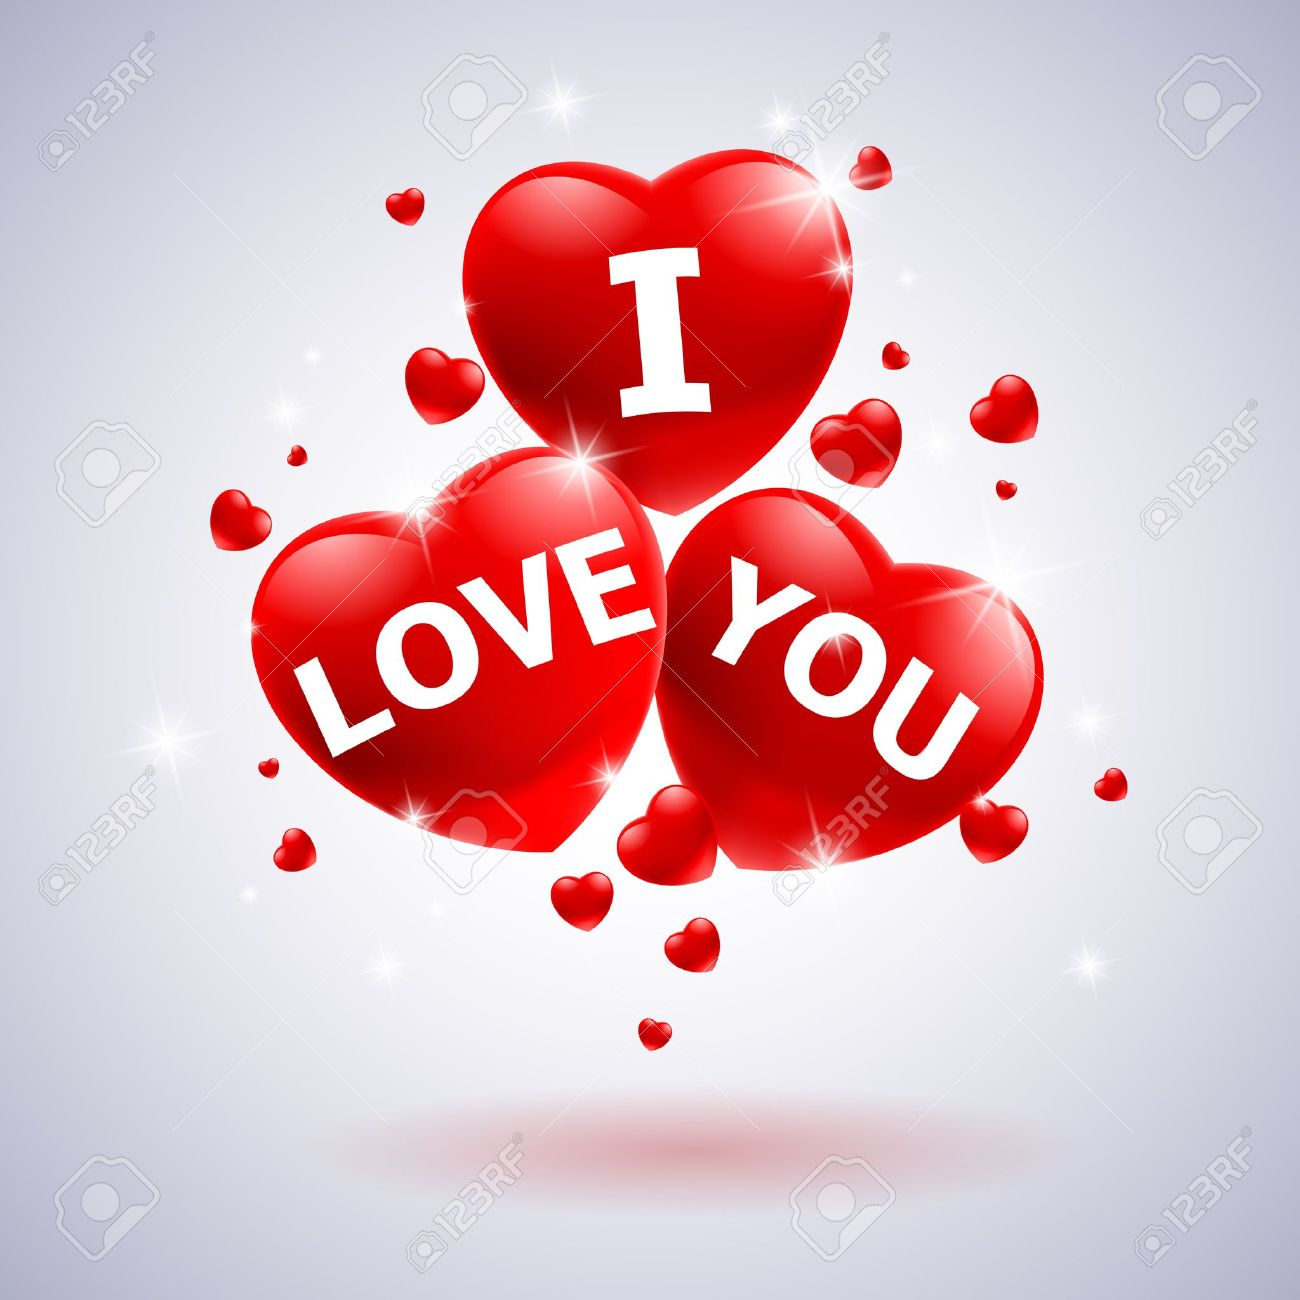 I love you with heart. Illustration for wedding design Stock Vector - 12491014